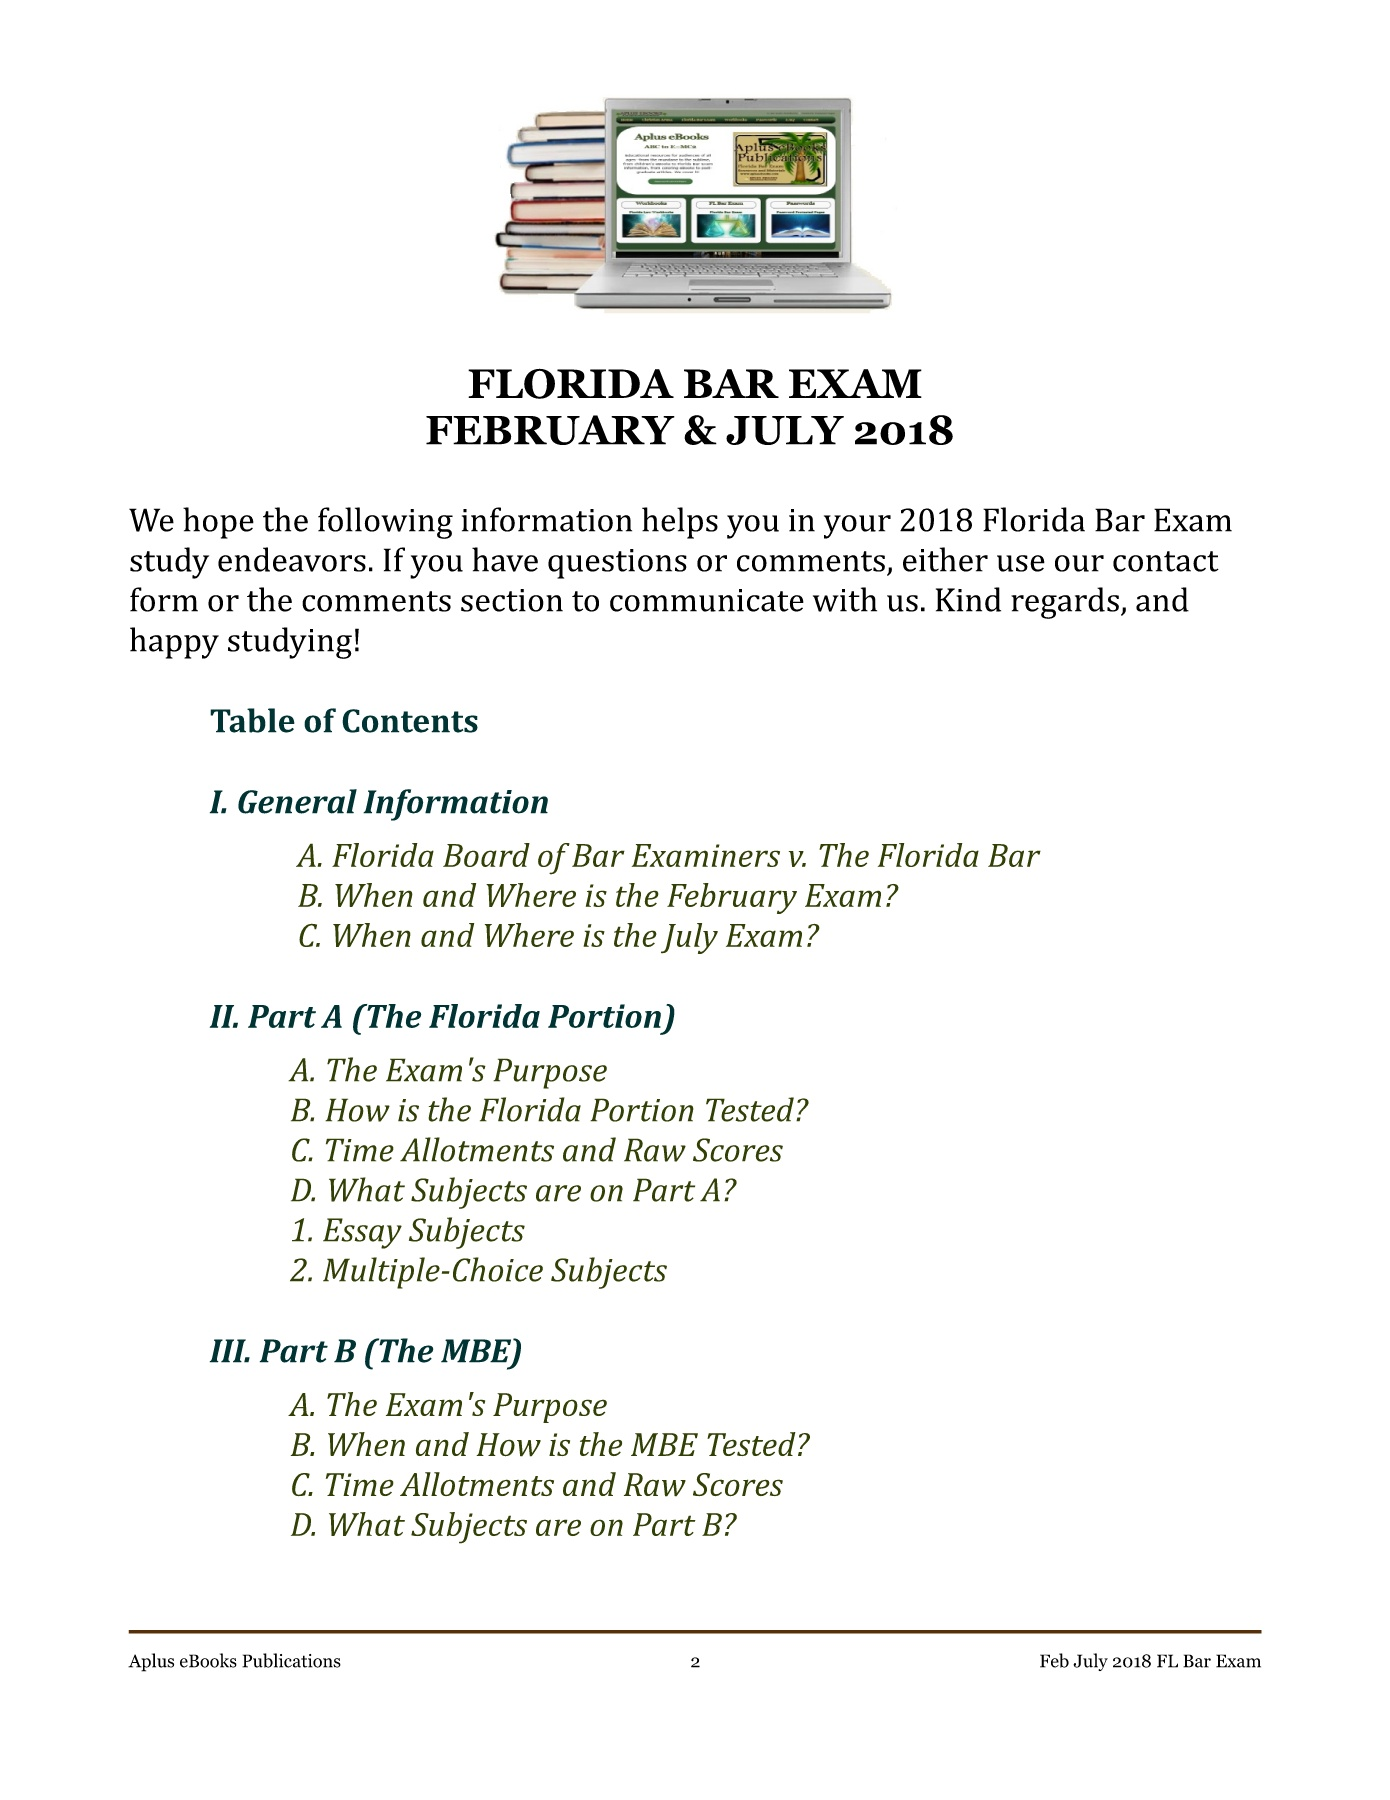 2018 Feb July FL Bar Exam FlipBook Pages 1 - 12 - Text Version | AnyFlip